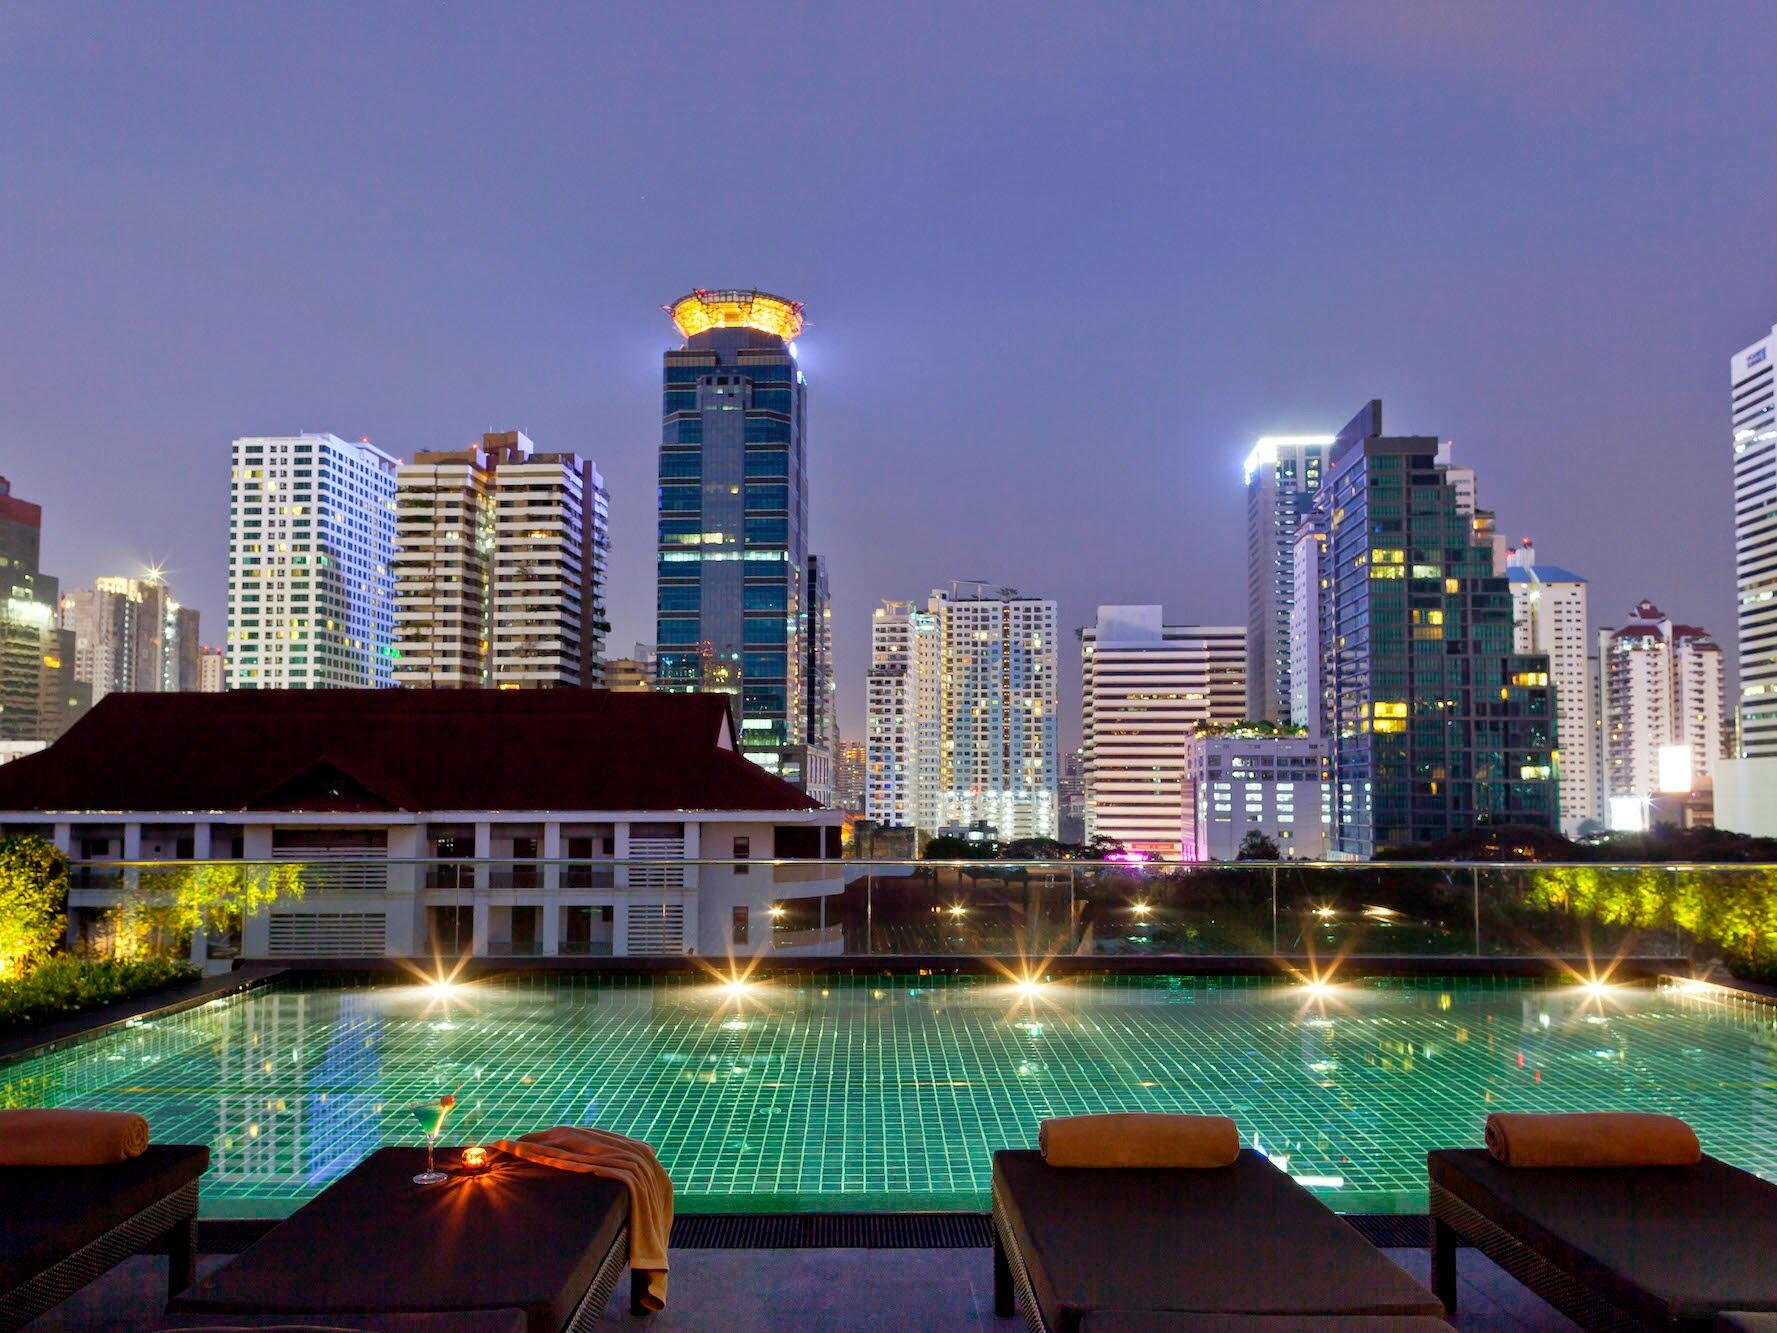 View of The Rooftop Pool Bar at Maitria Mode Sukhumvit 15